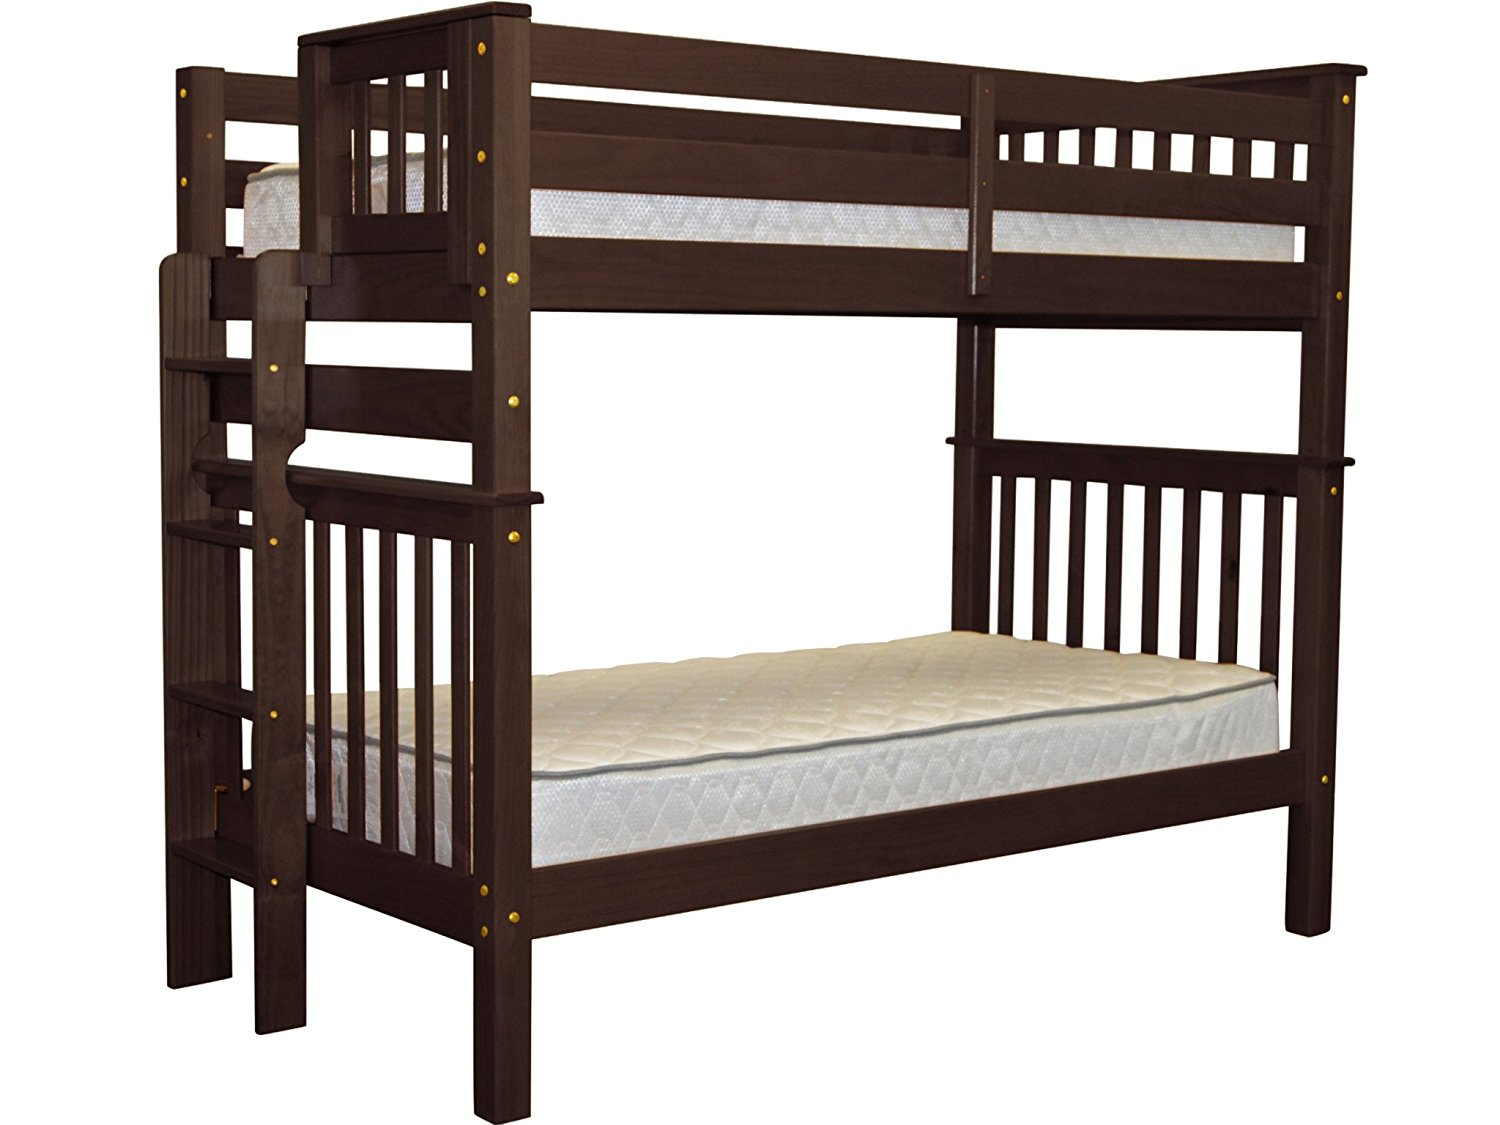 Cheap Folding Rv Bunk Beds Find Folding Rv Bunk Beds Deals On Line